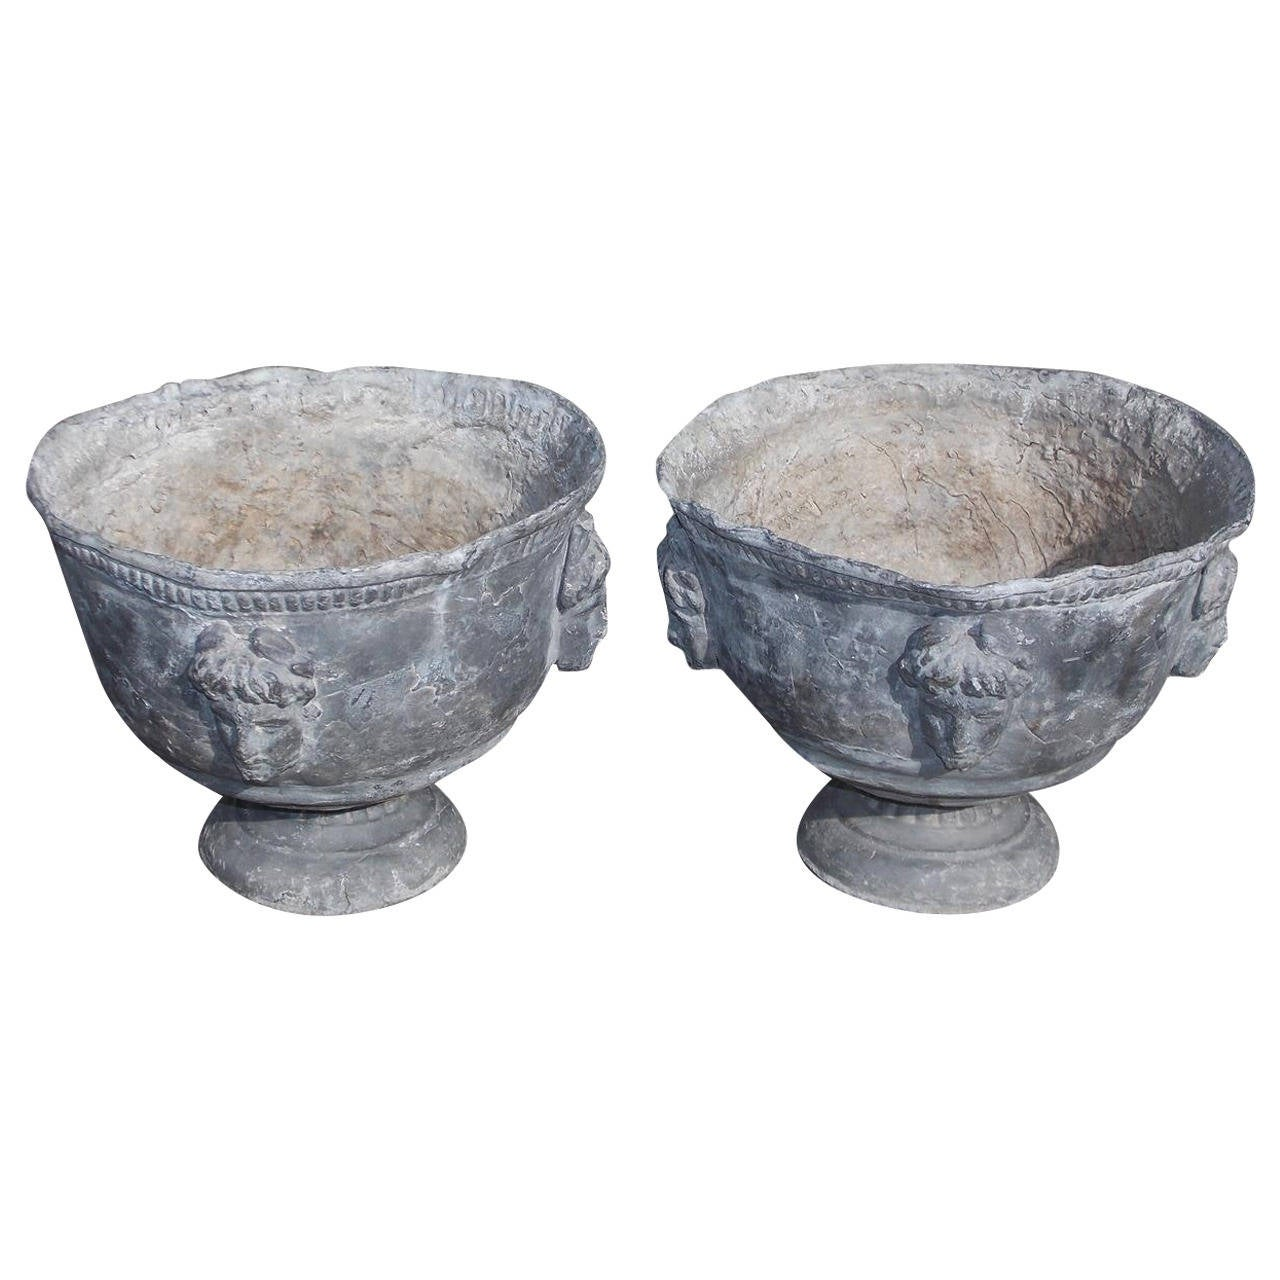 Pair of Italian Lead Decorative Garden Urns, Circa 1820